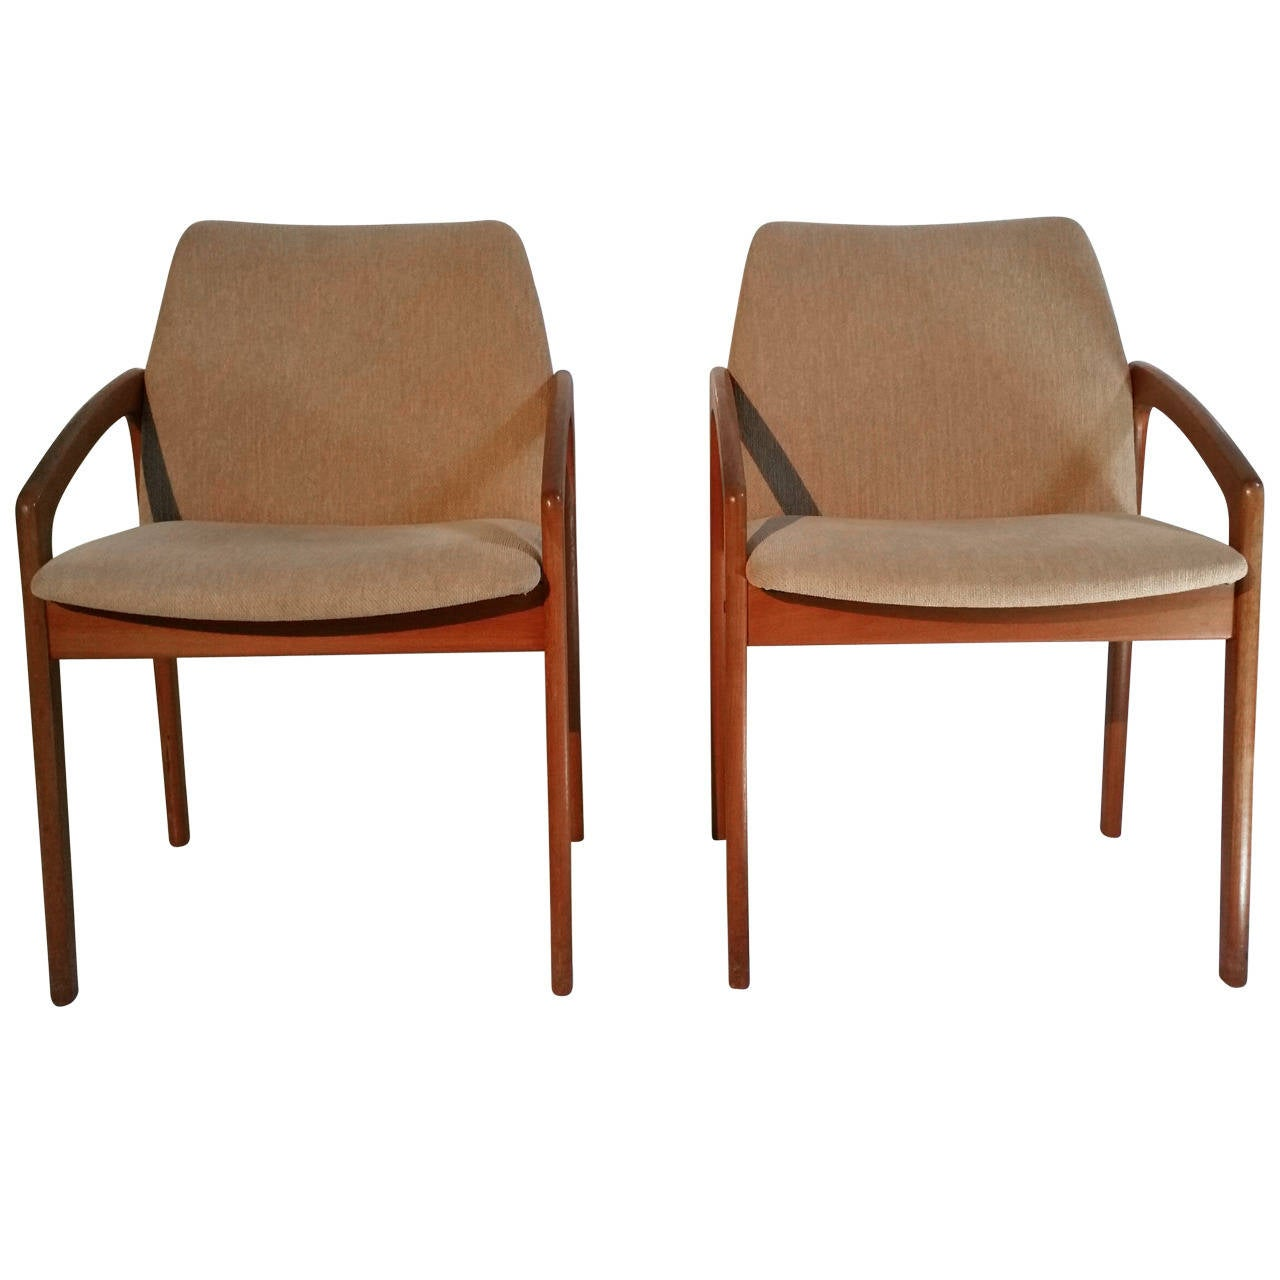 Pair Of Kai Kristiansen Teak Chairs Denmark At 1stdibs